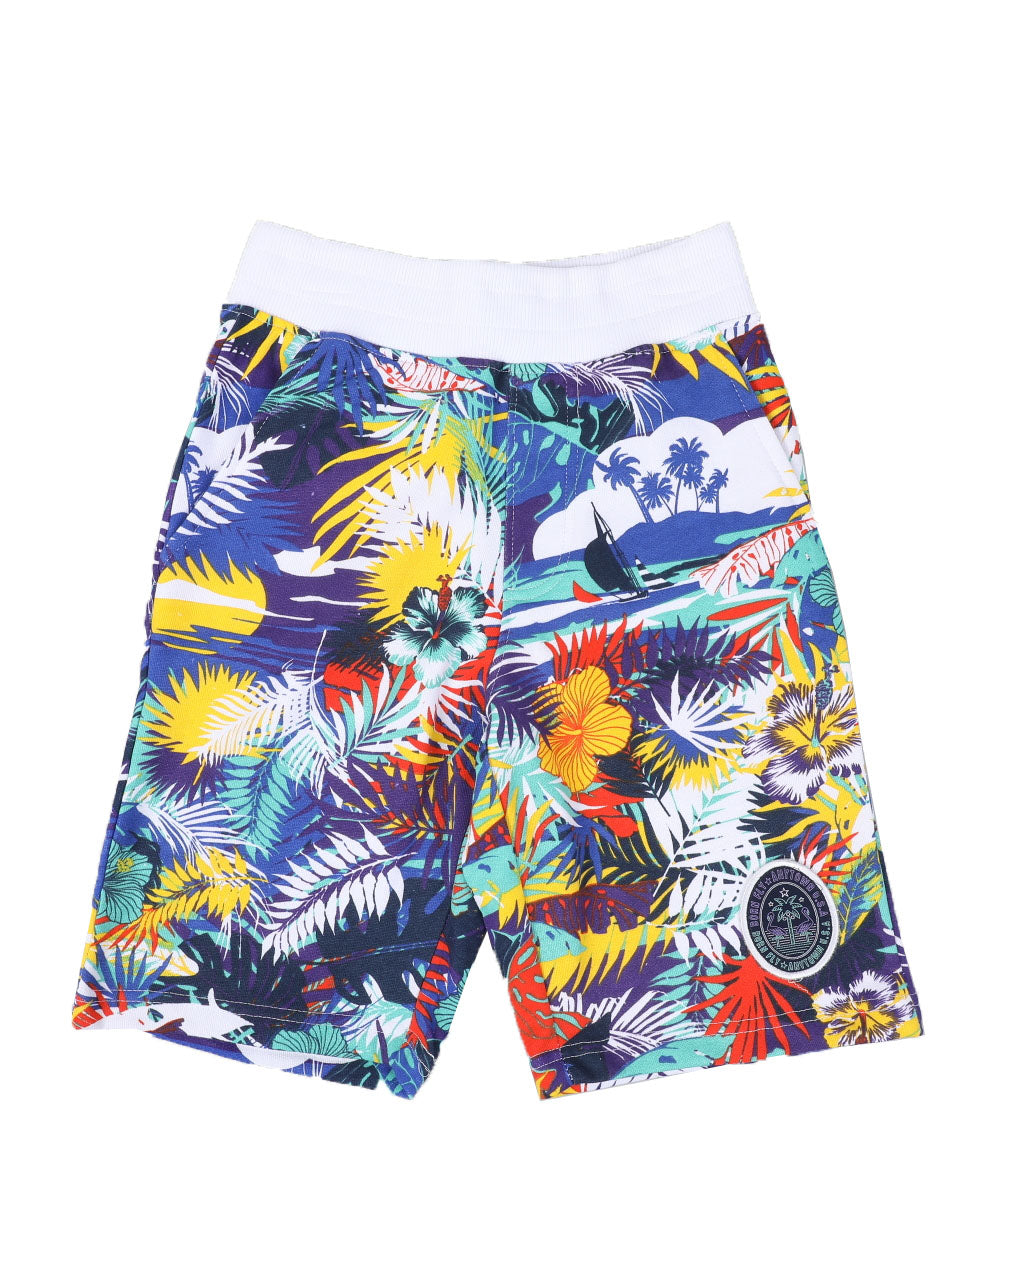 Loopback Sweat Shorts by Born Fly - FLY GUYZ